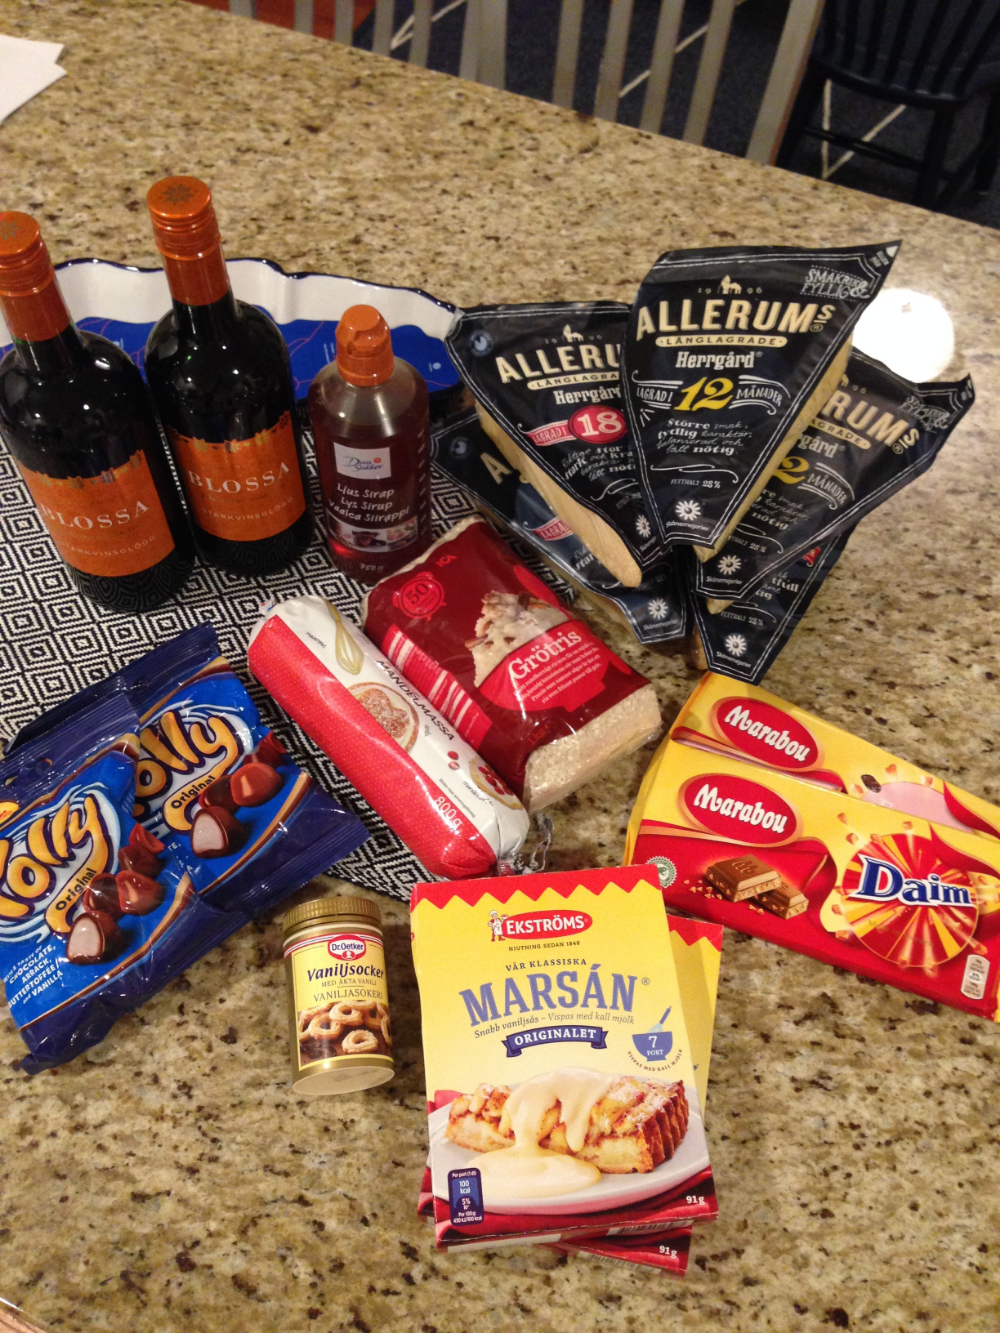 Swedish food and goodies